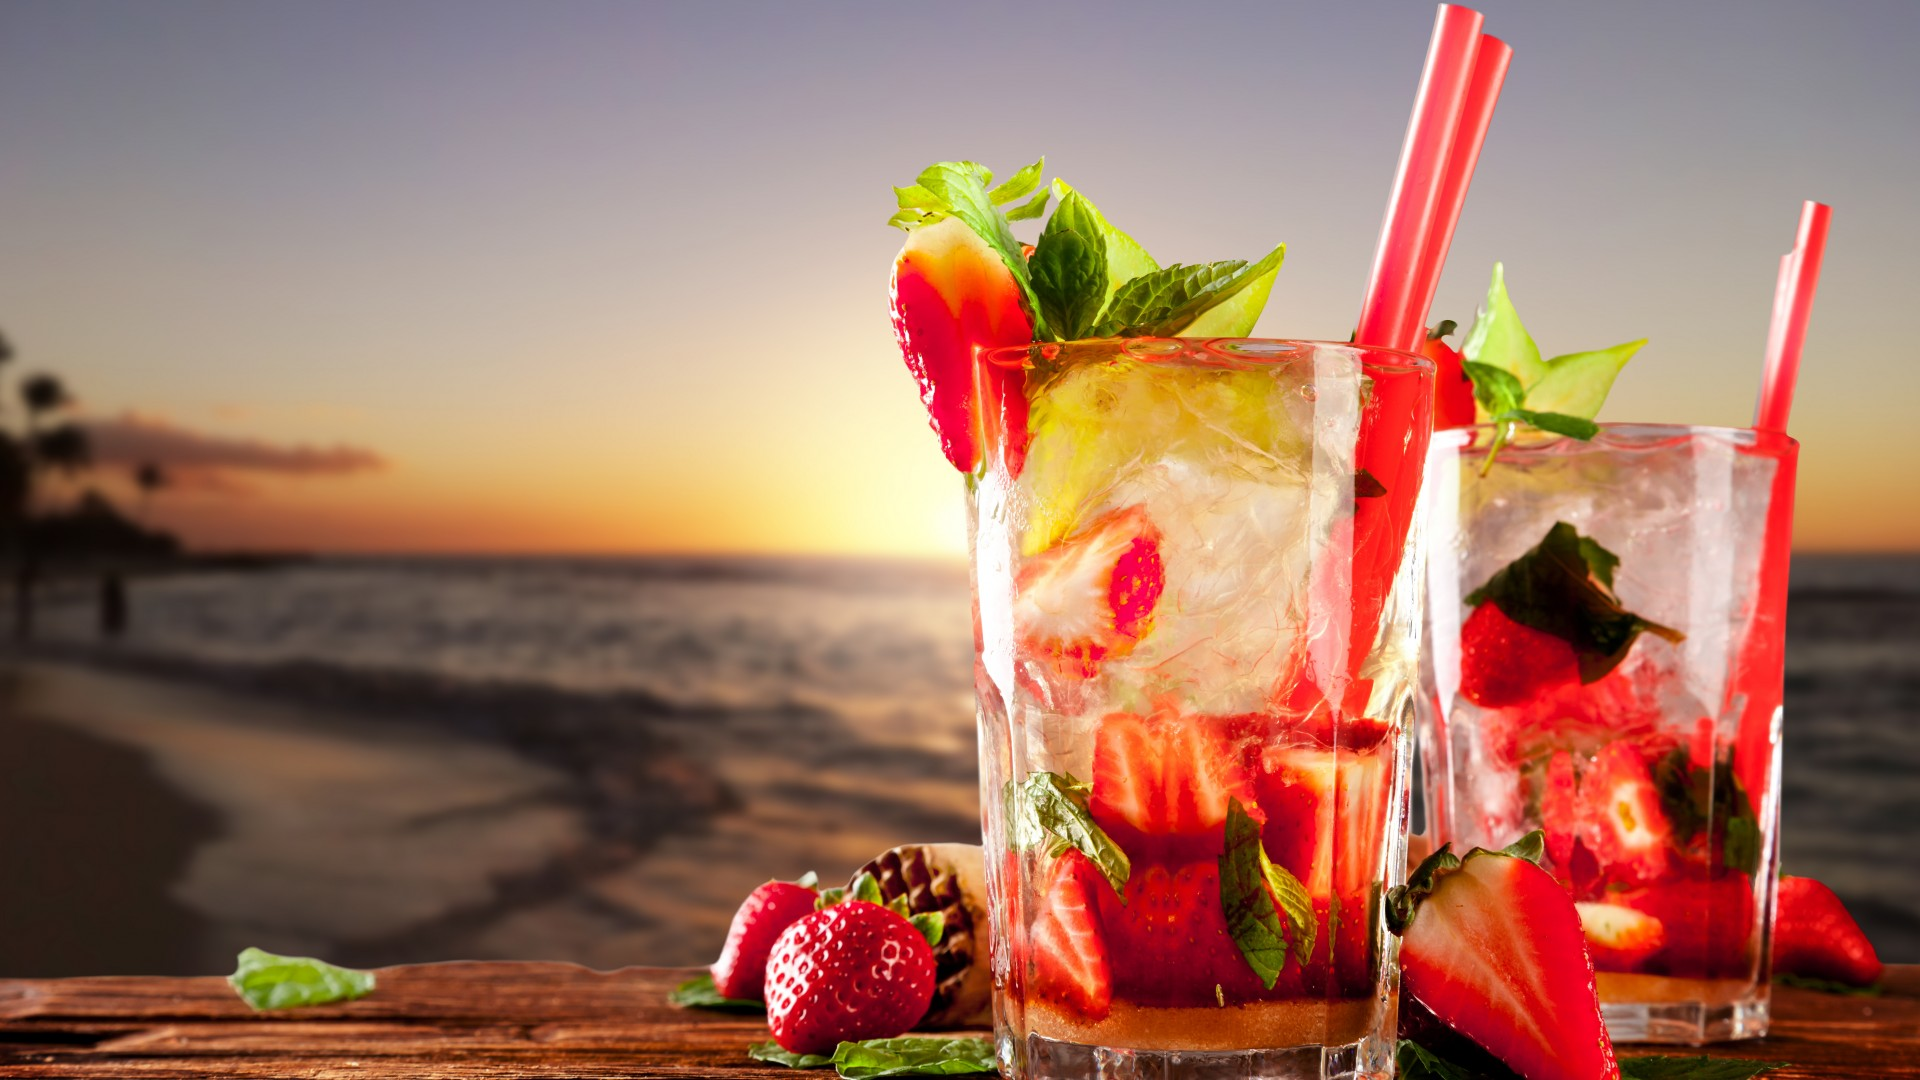 cocktails, tropical, beach, fruit, strawberries, ice, mint (horizontal)